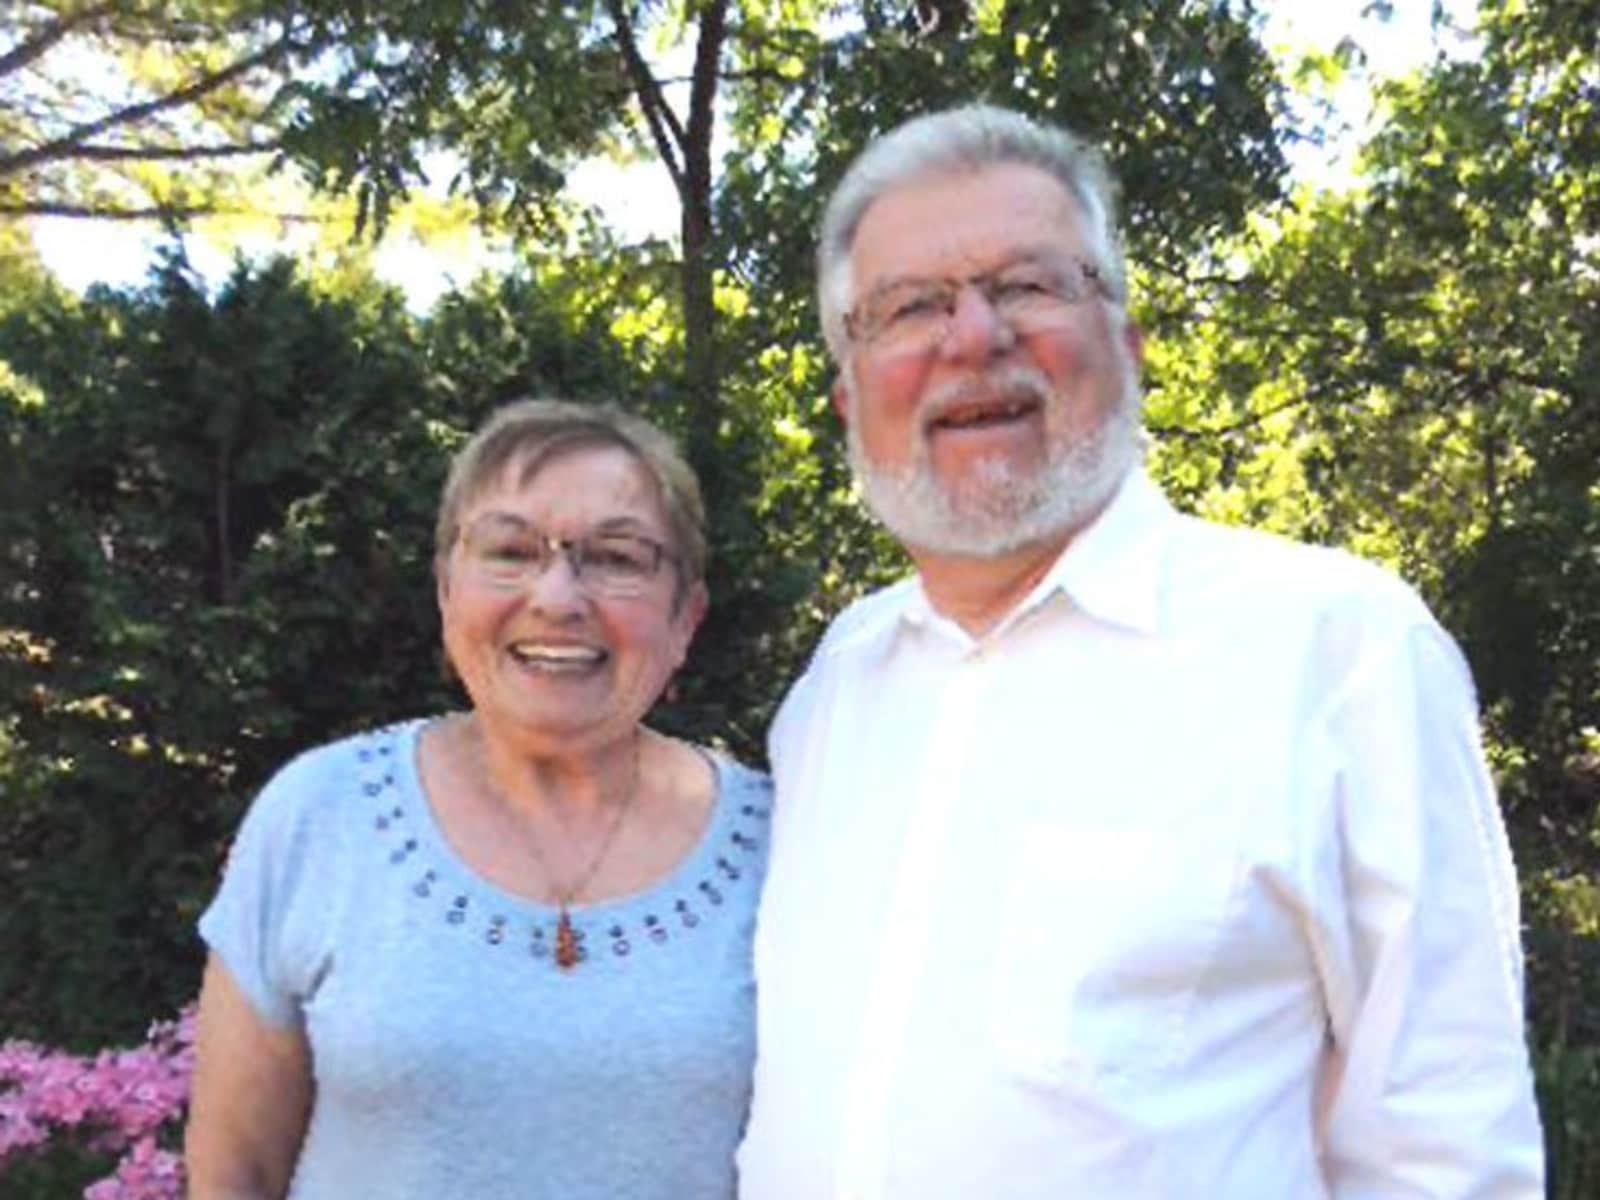 Virginia & Ron from Pictou, Nova Scotia, Canada